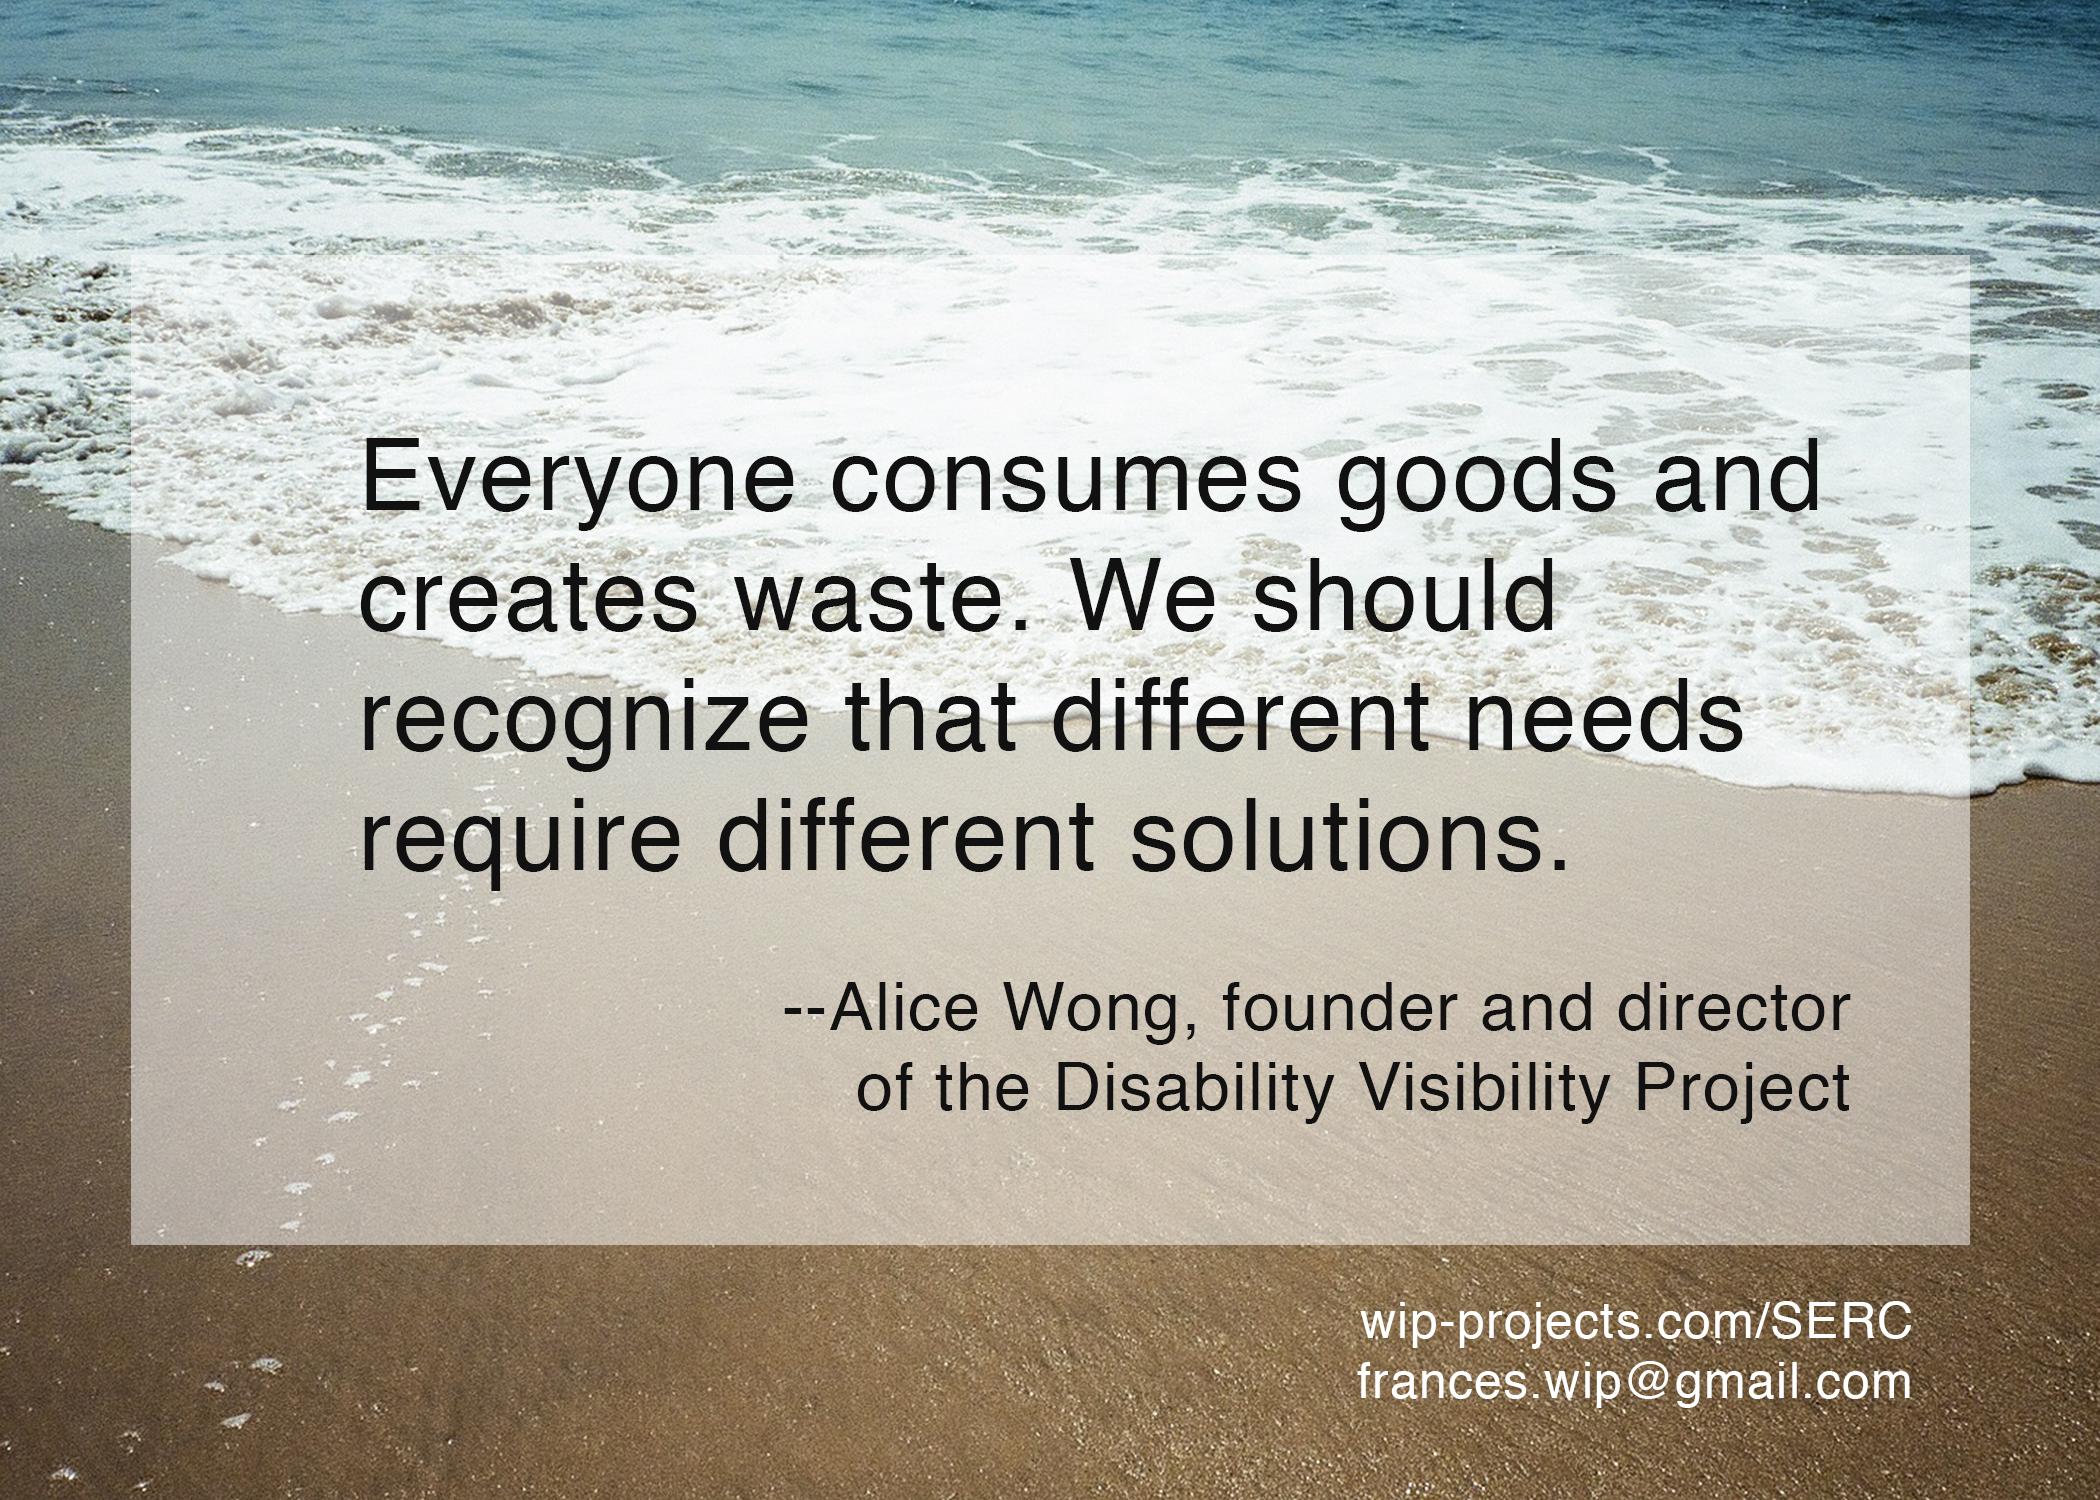 Everyone consumes goods and creates waste. We should recognize that different needs require different solutions. —Alice Wong, founder and director of the Disability Visibility Project